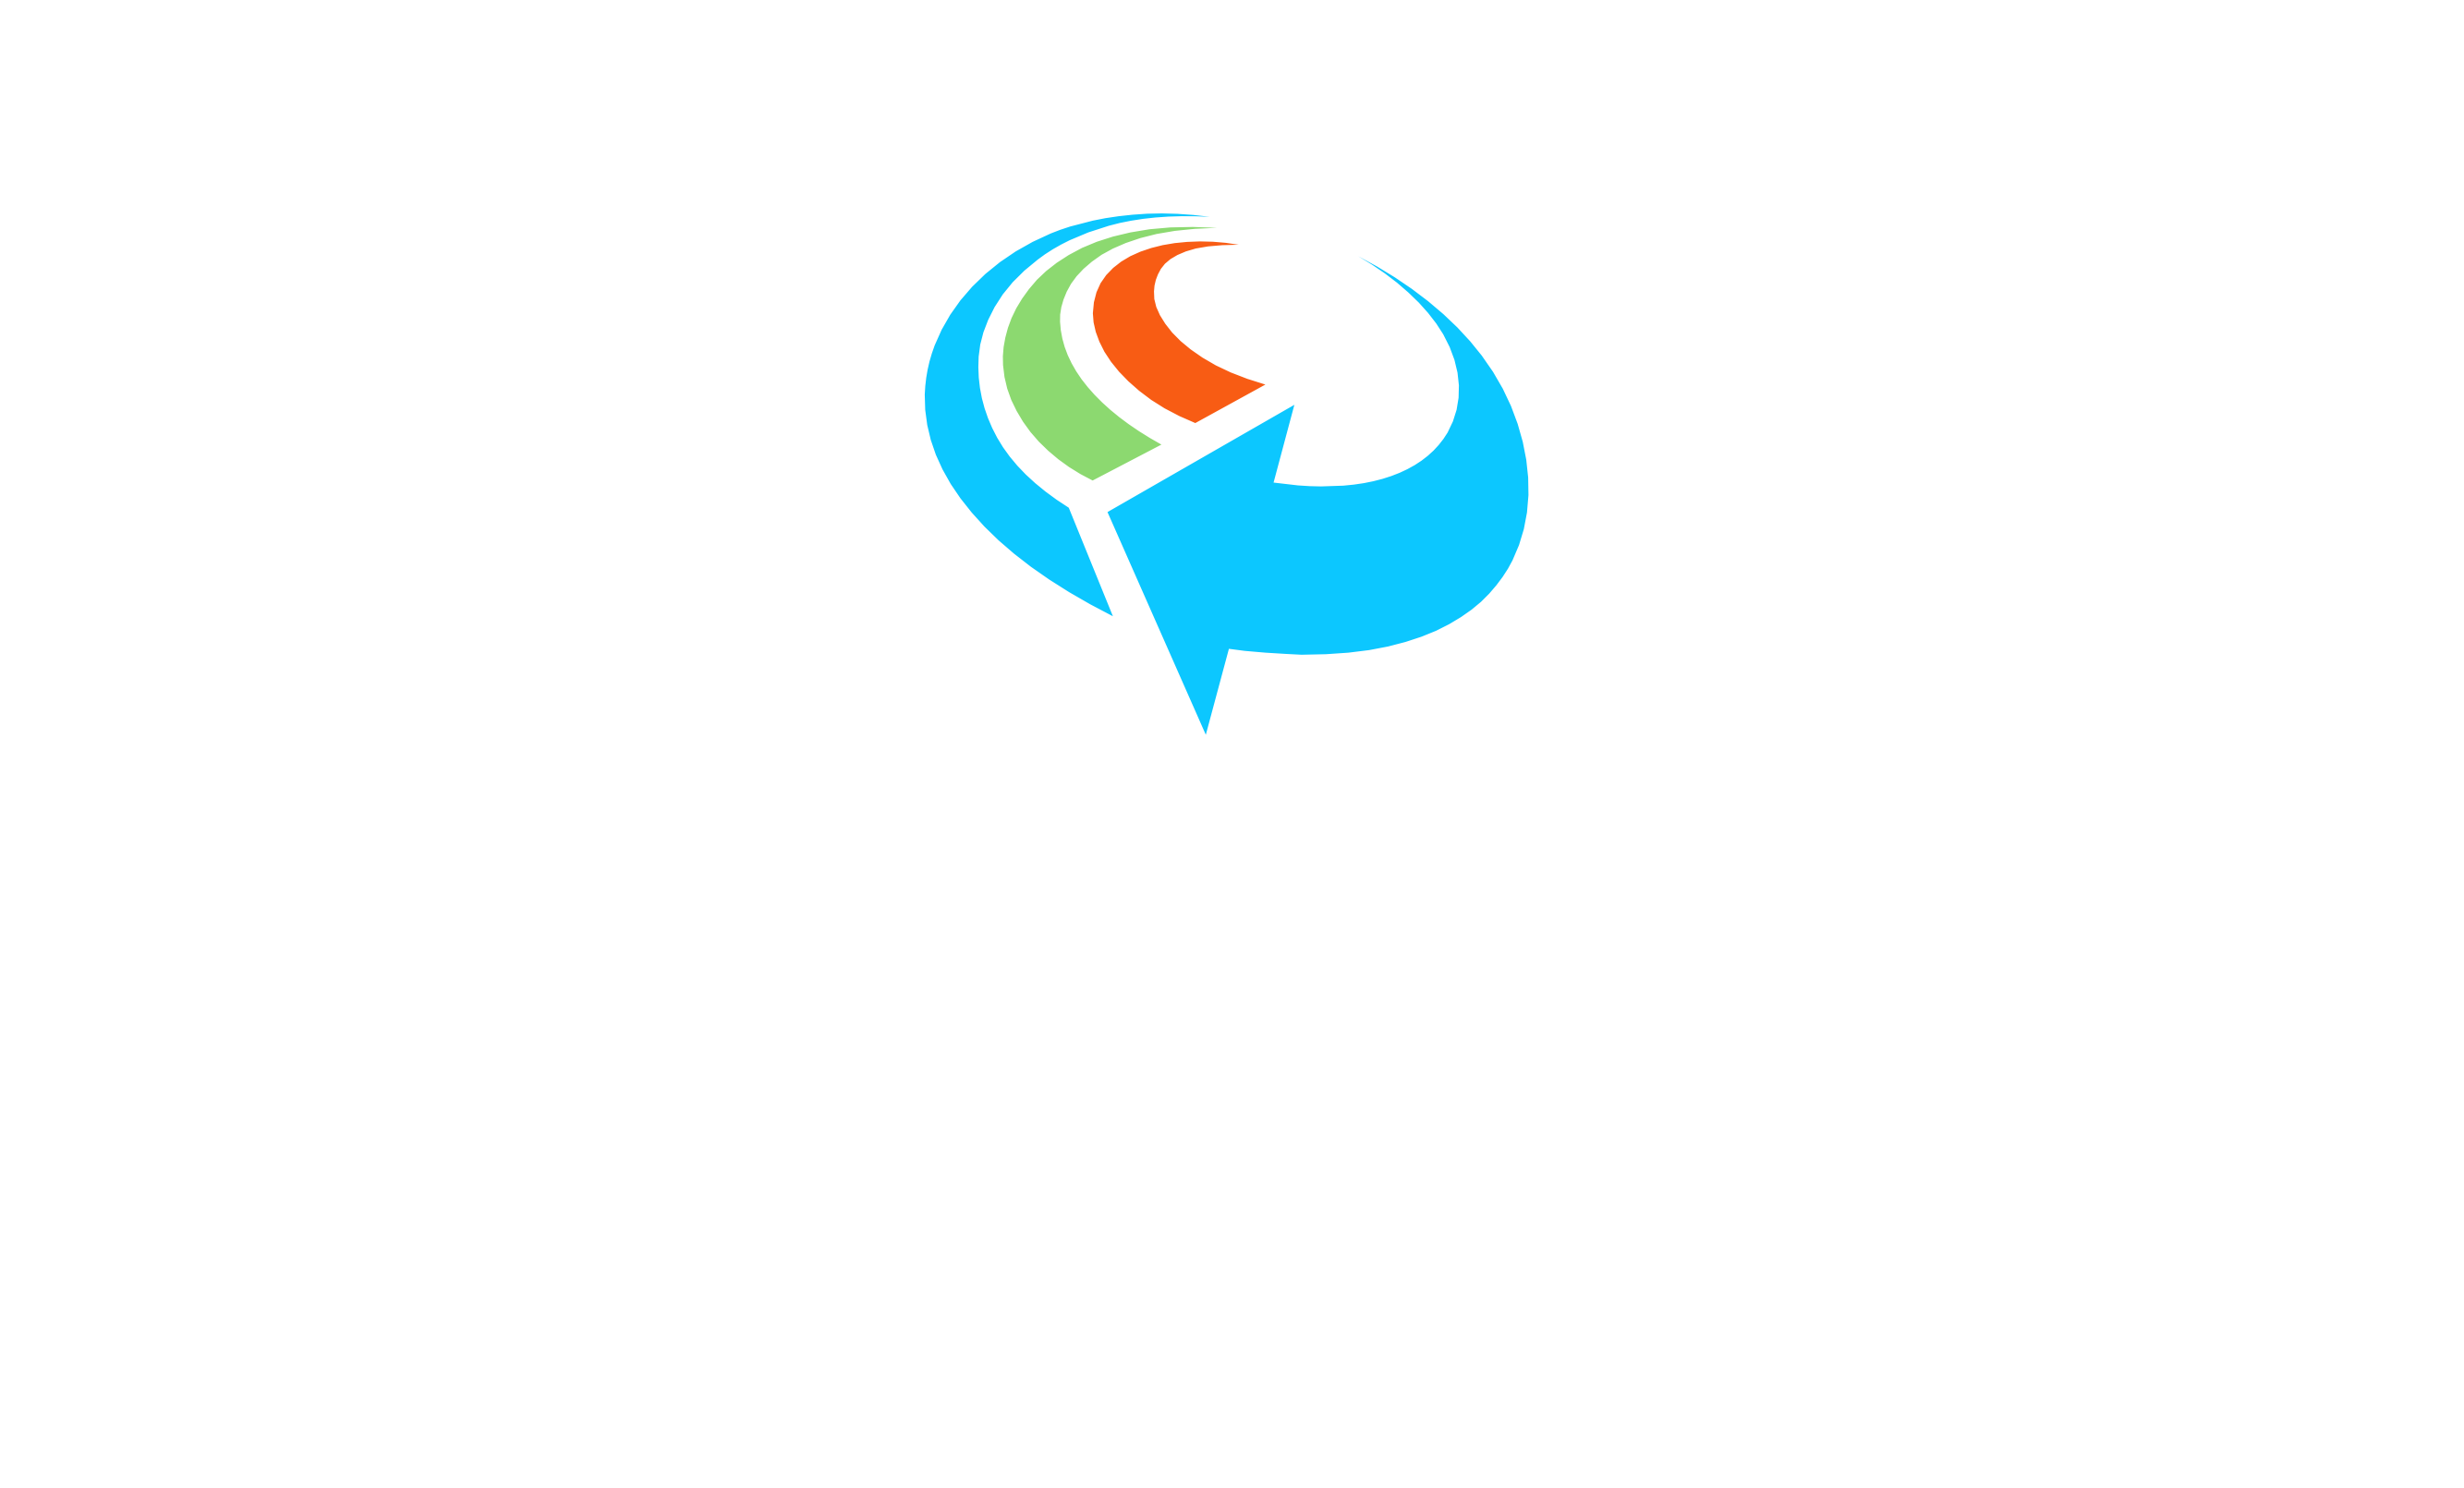 XperienceByDesign